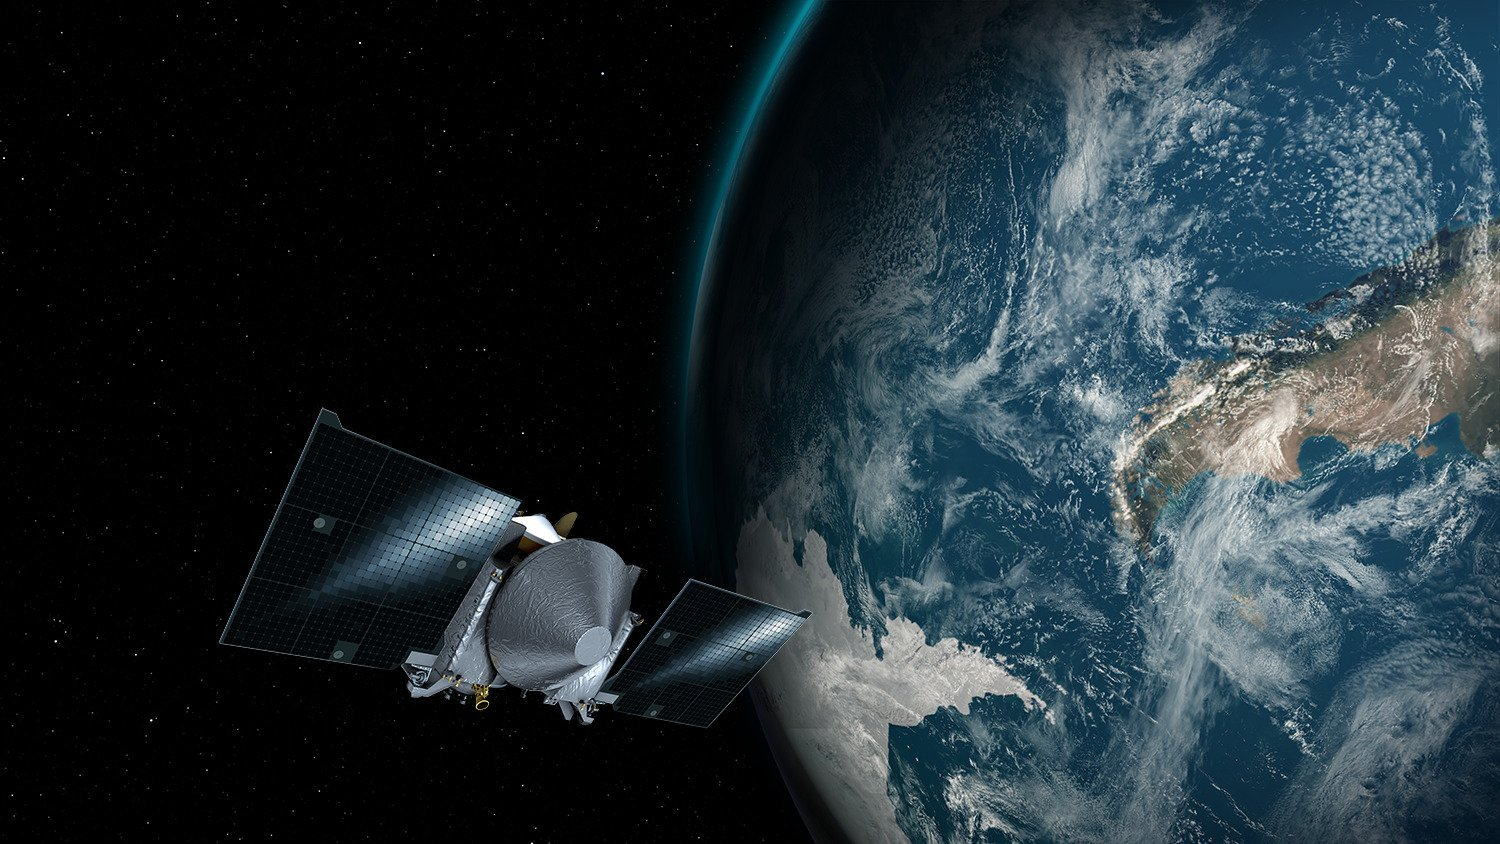 Illustration showing the OSIRIS-REx spacecraft passing near Earth on Sept. 22, 2017. Credit: NASA/University of Arizona